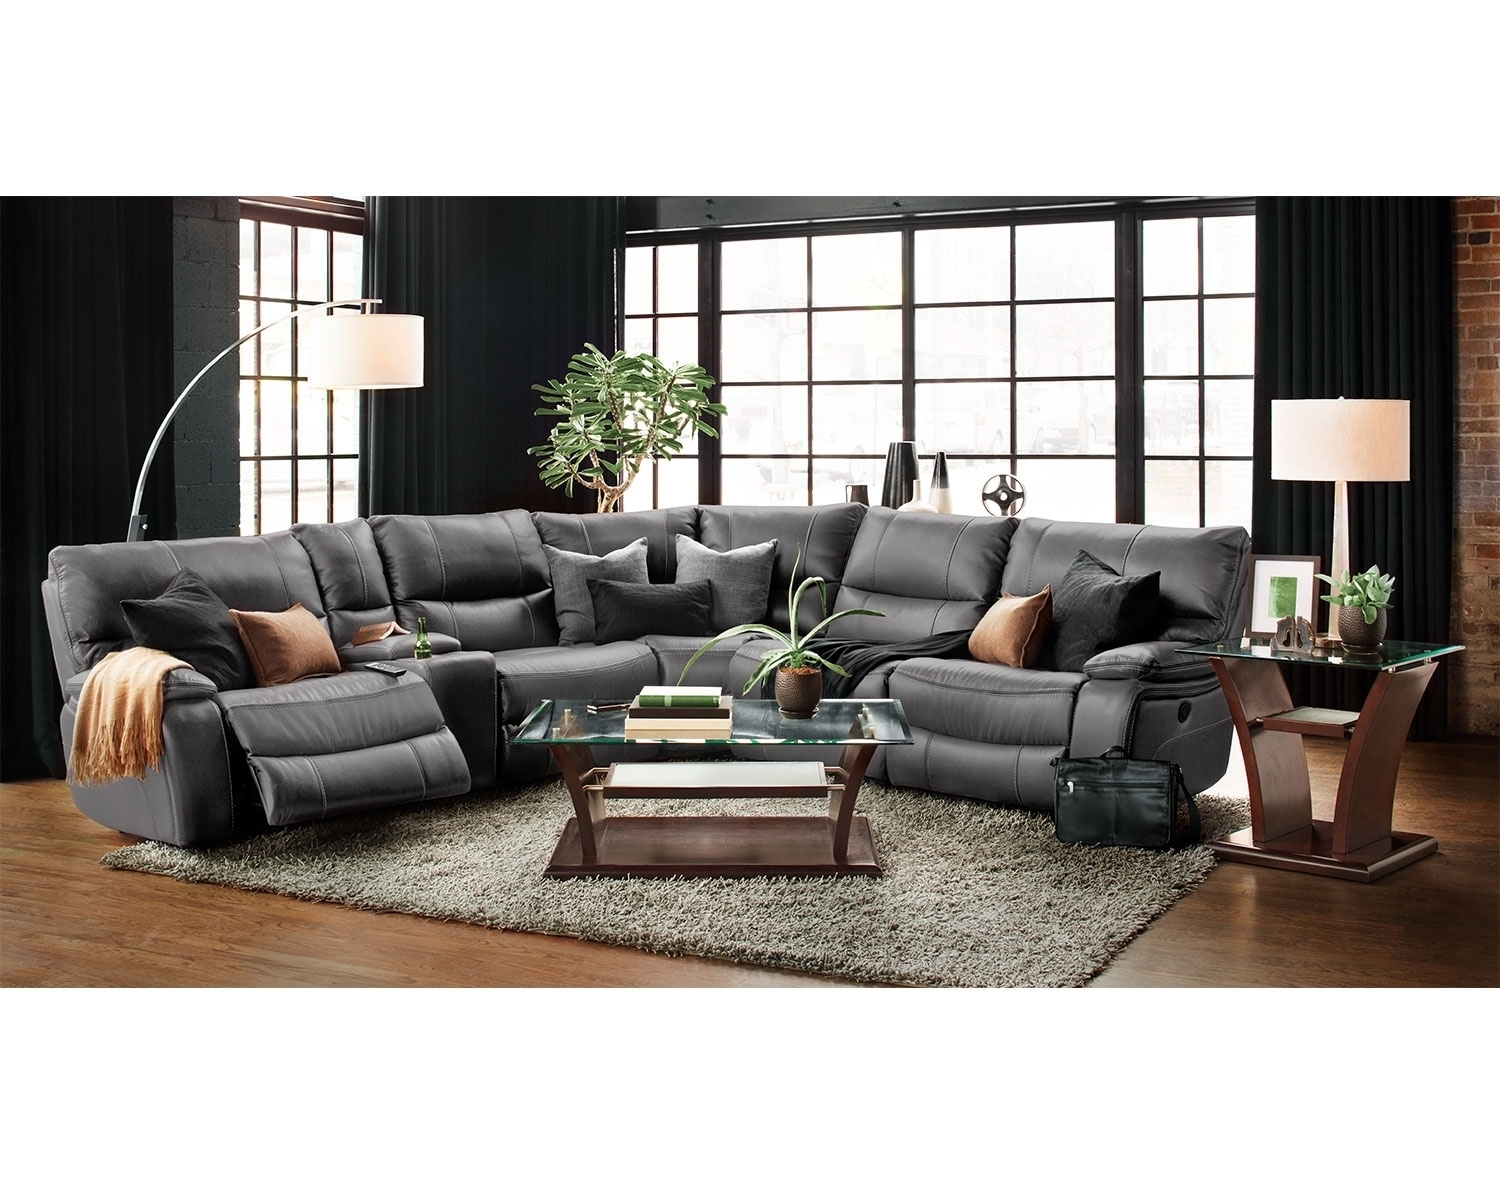 The Orlando Collection – Gray | American Signature Furniture In Orlando Sectional Sofas (Image 9 of 10)